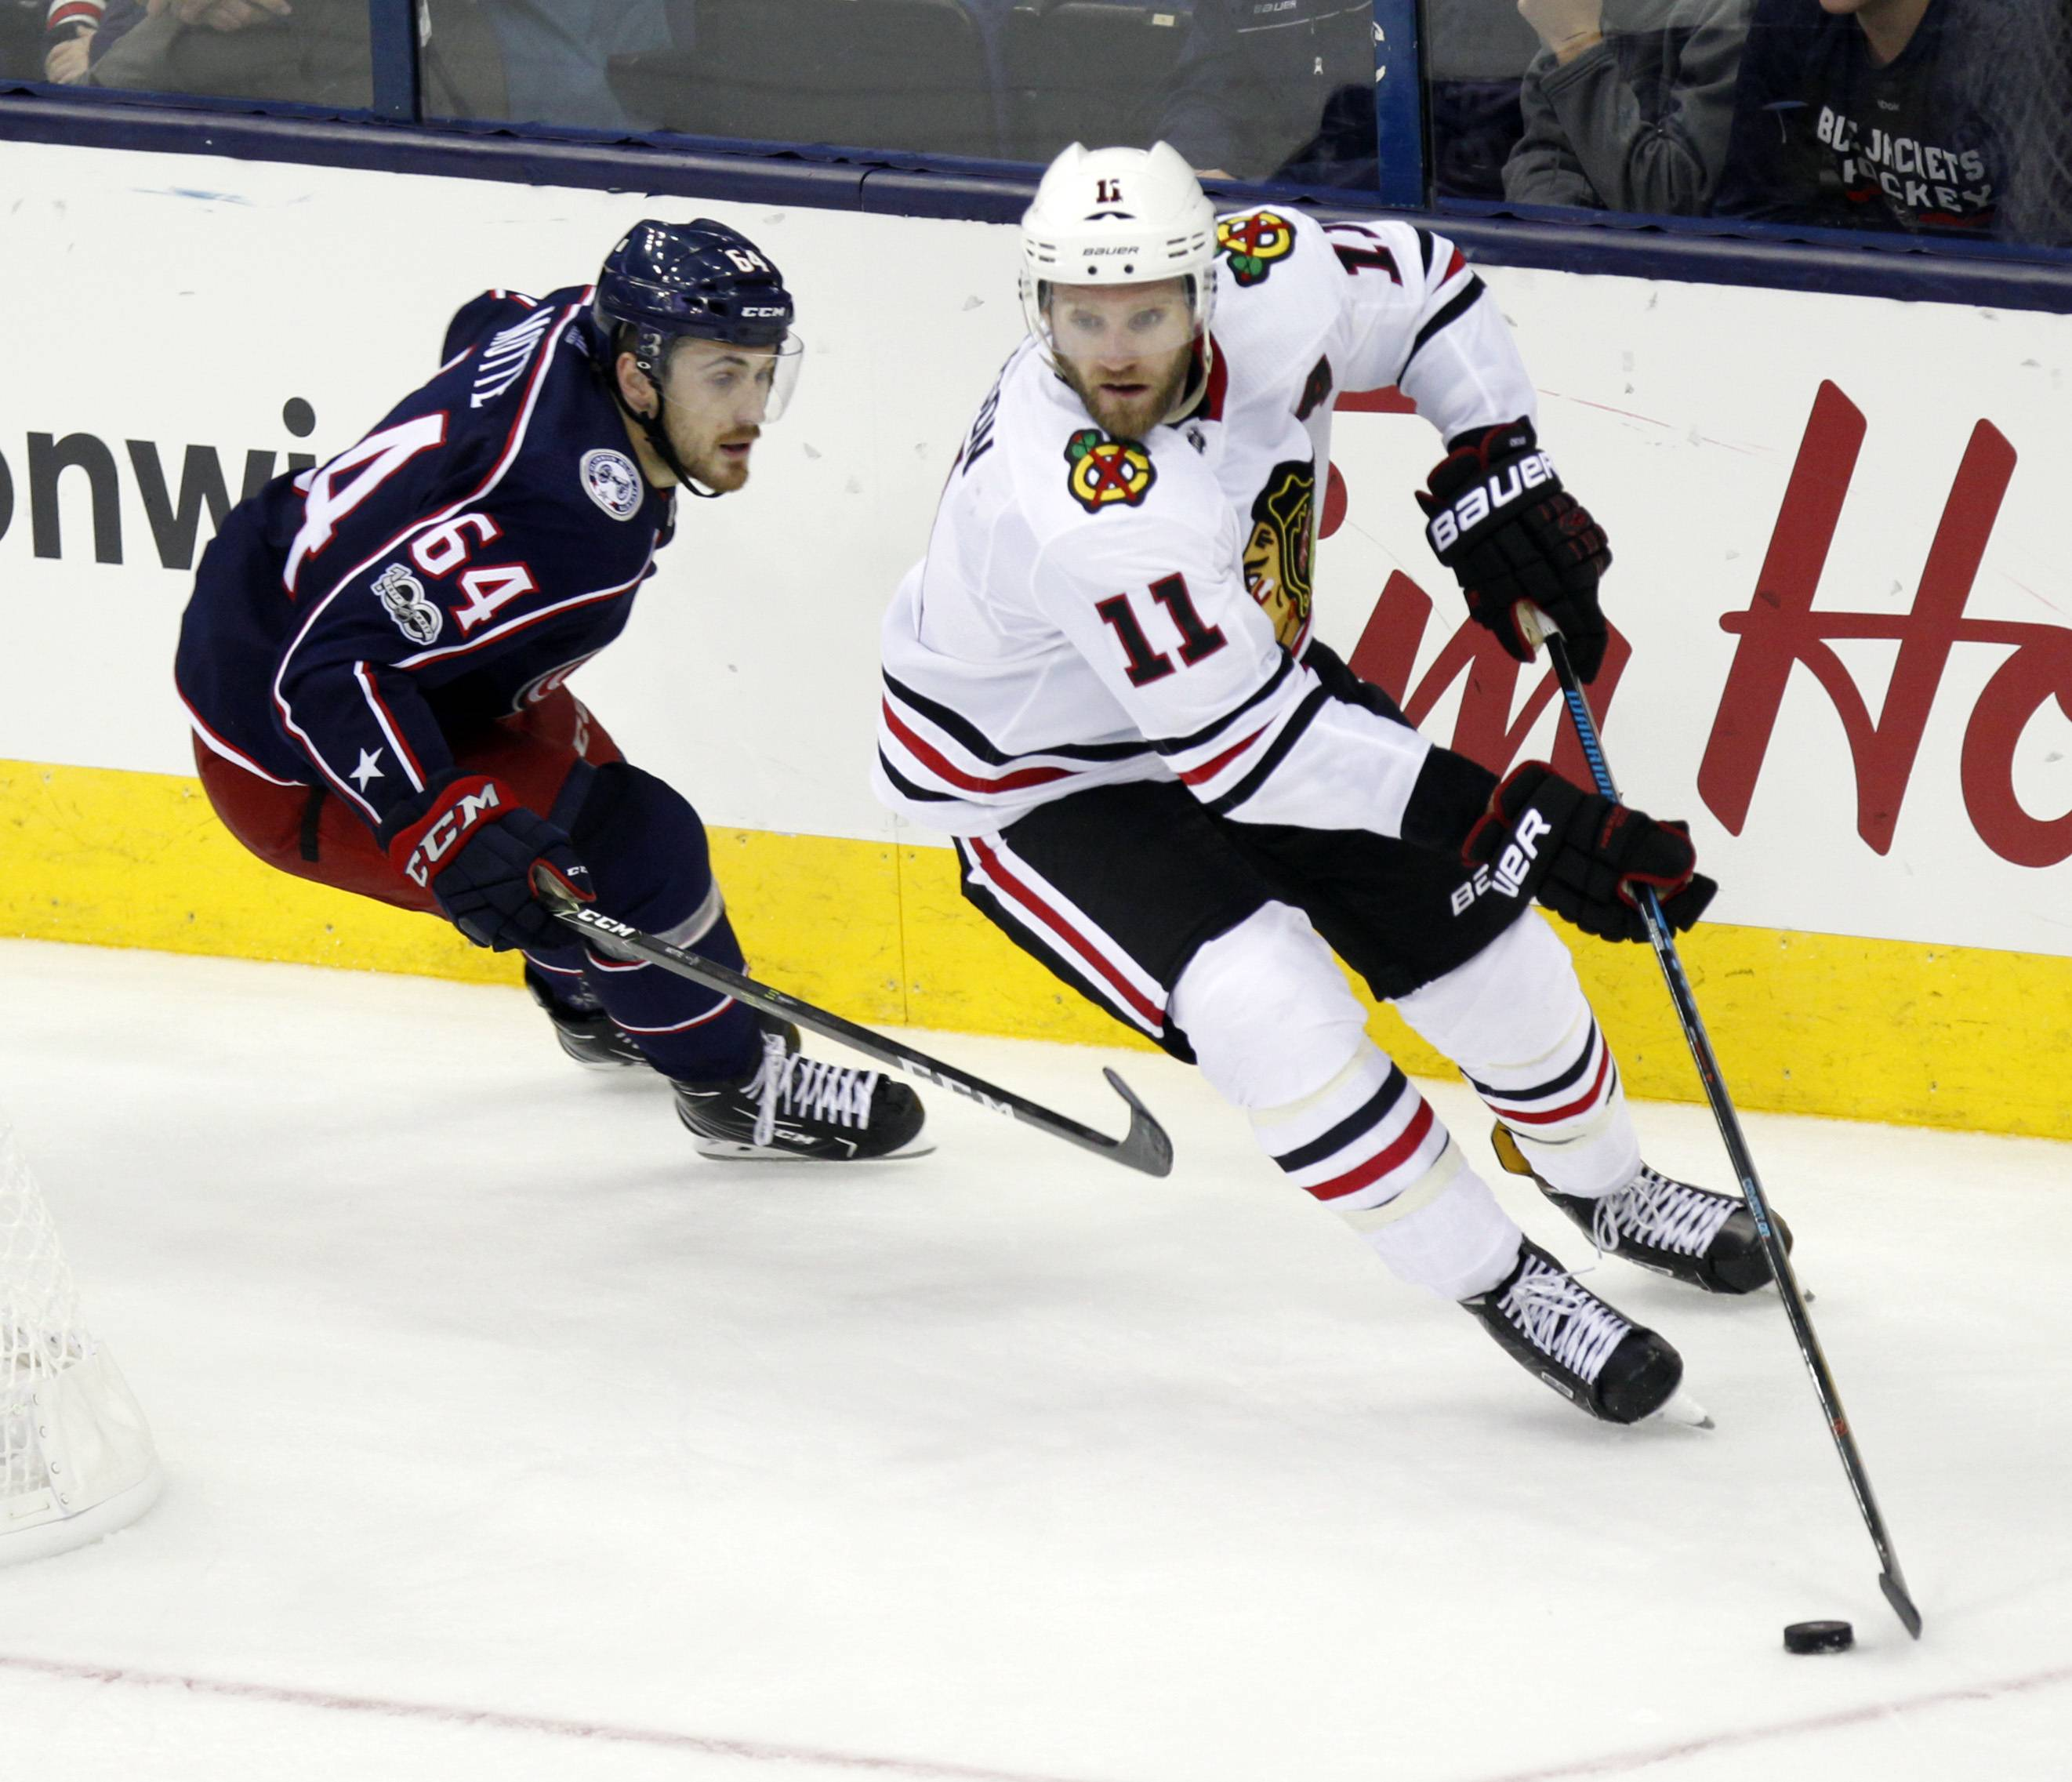 Chicago Blackhawks defenseman Cody Franson said he was shocked when the Blackhawks placed him and waivers, and then surprised that he wasn't claimed.